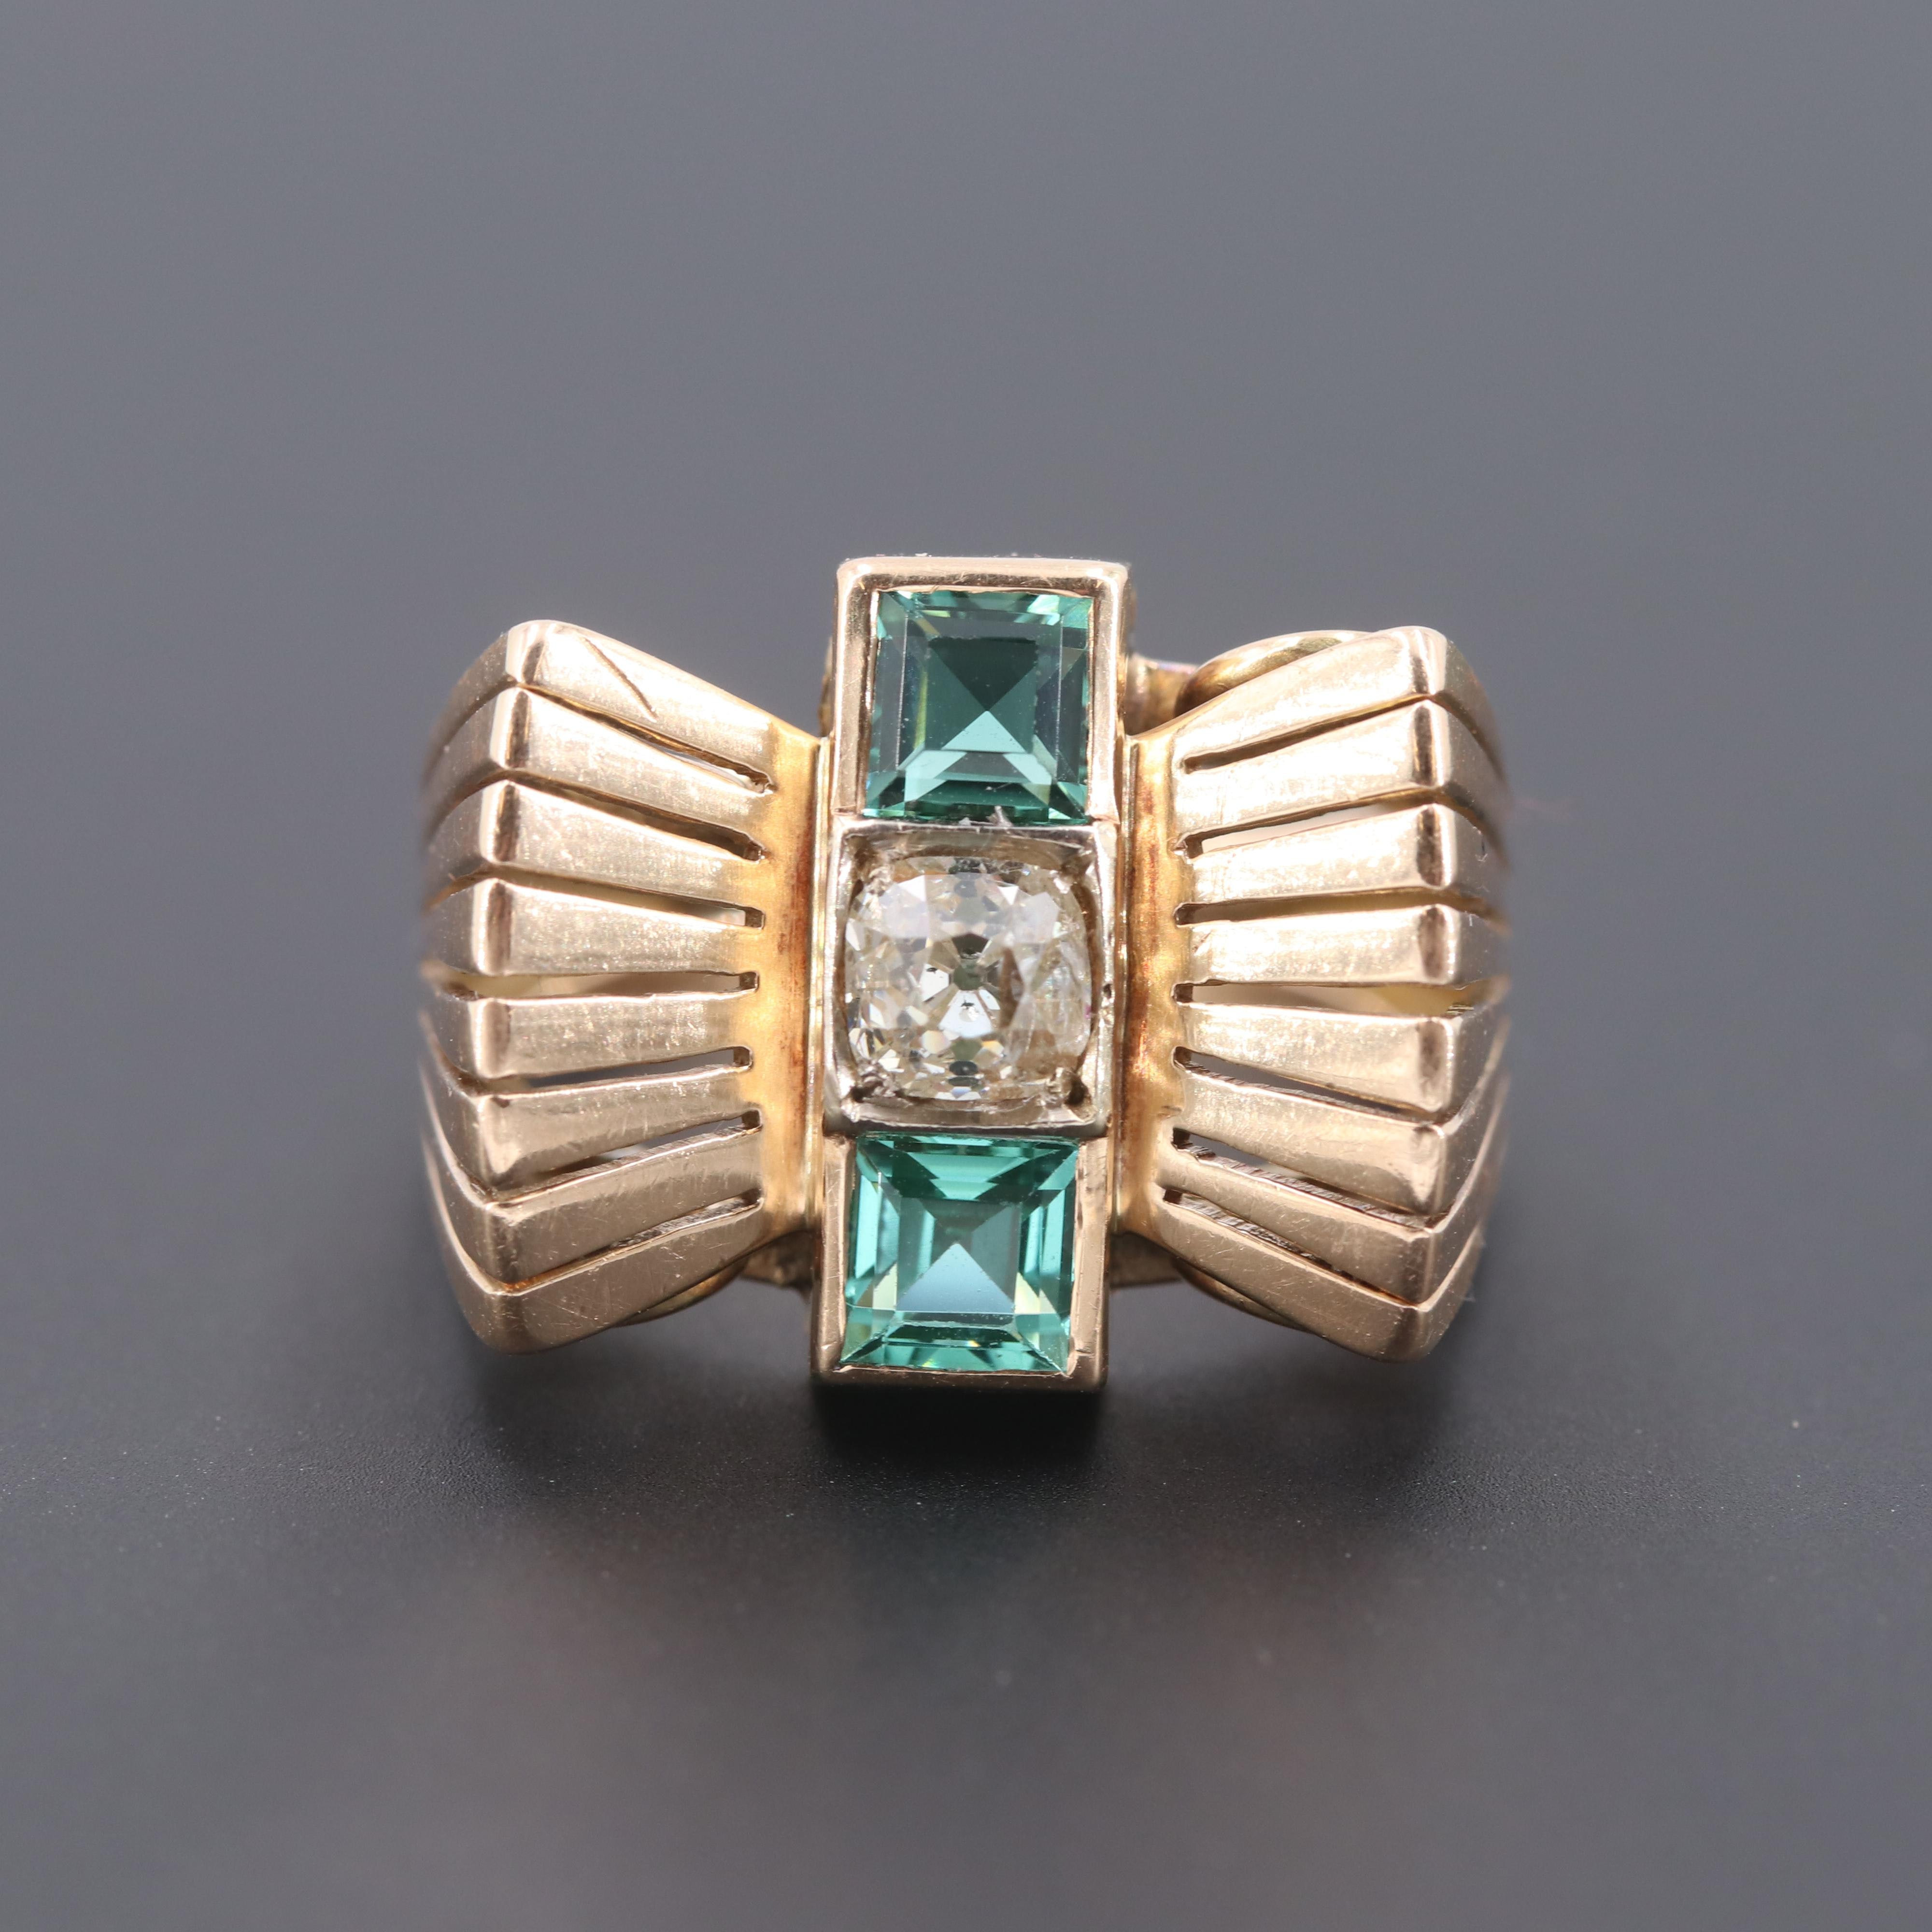 Circa 1940's Vintage 14K Yellow Gold Diamond and Hiddenite Ring